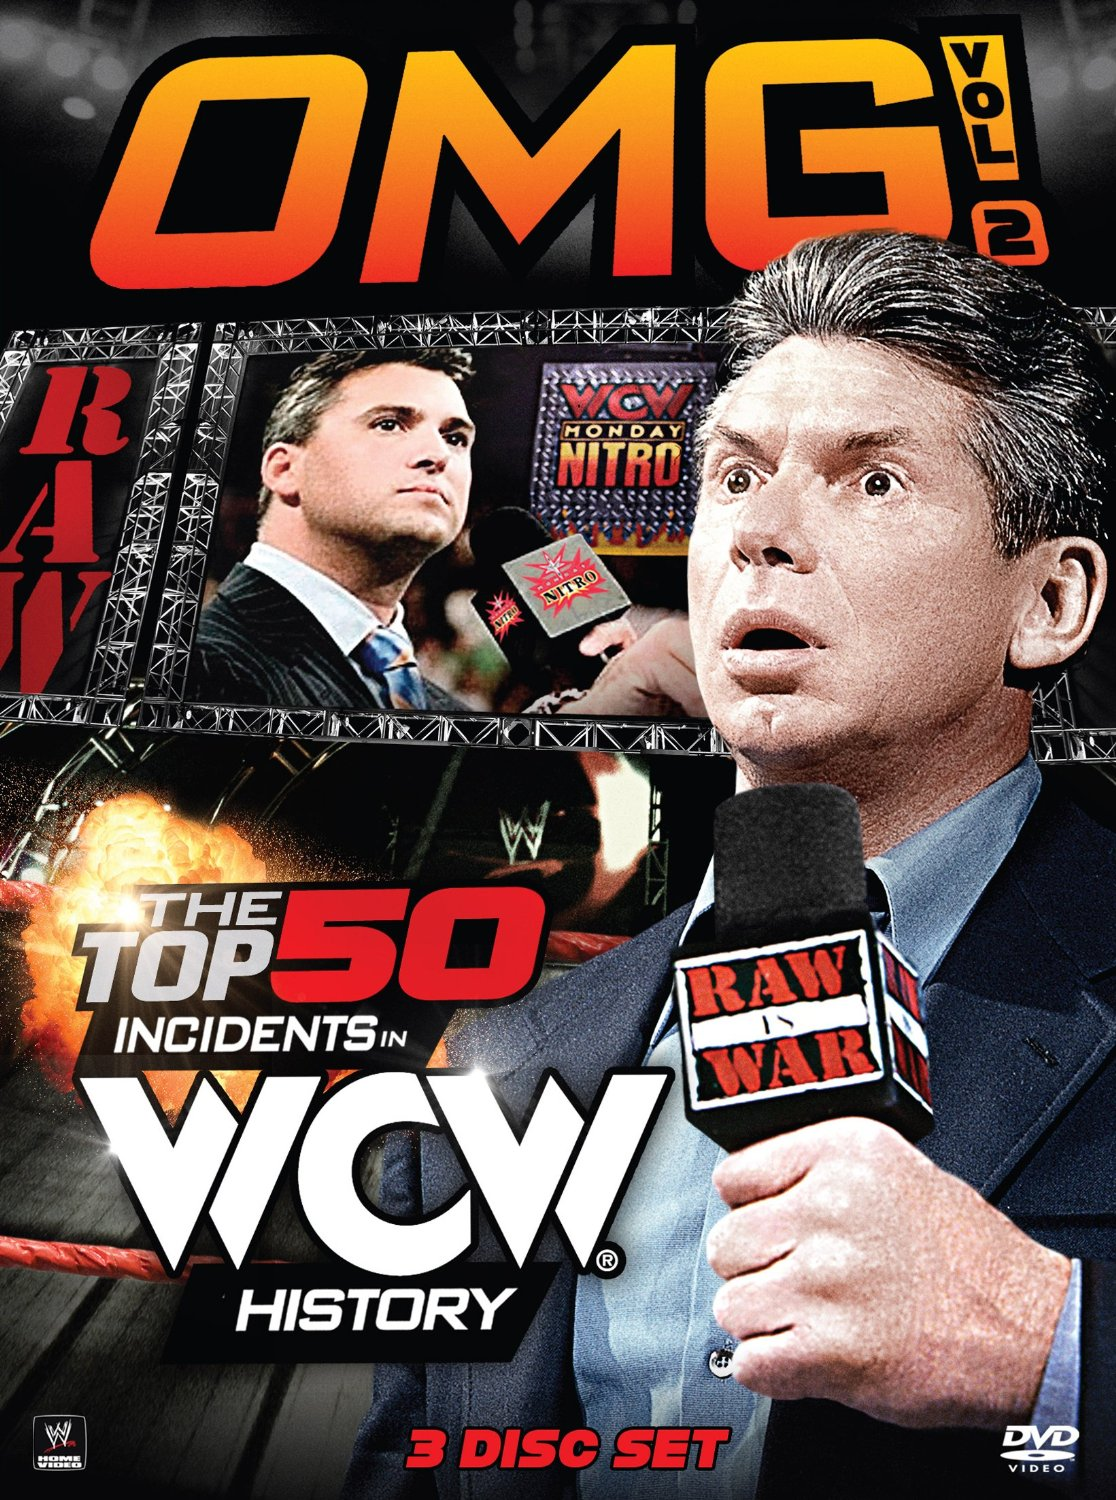 WWE: OMG! Volume 2 - The Top 50 Incidents in WCW